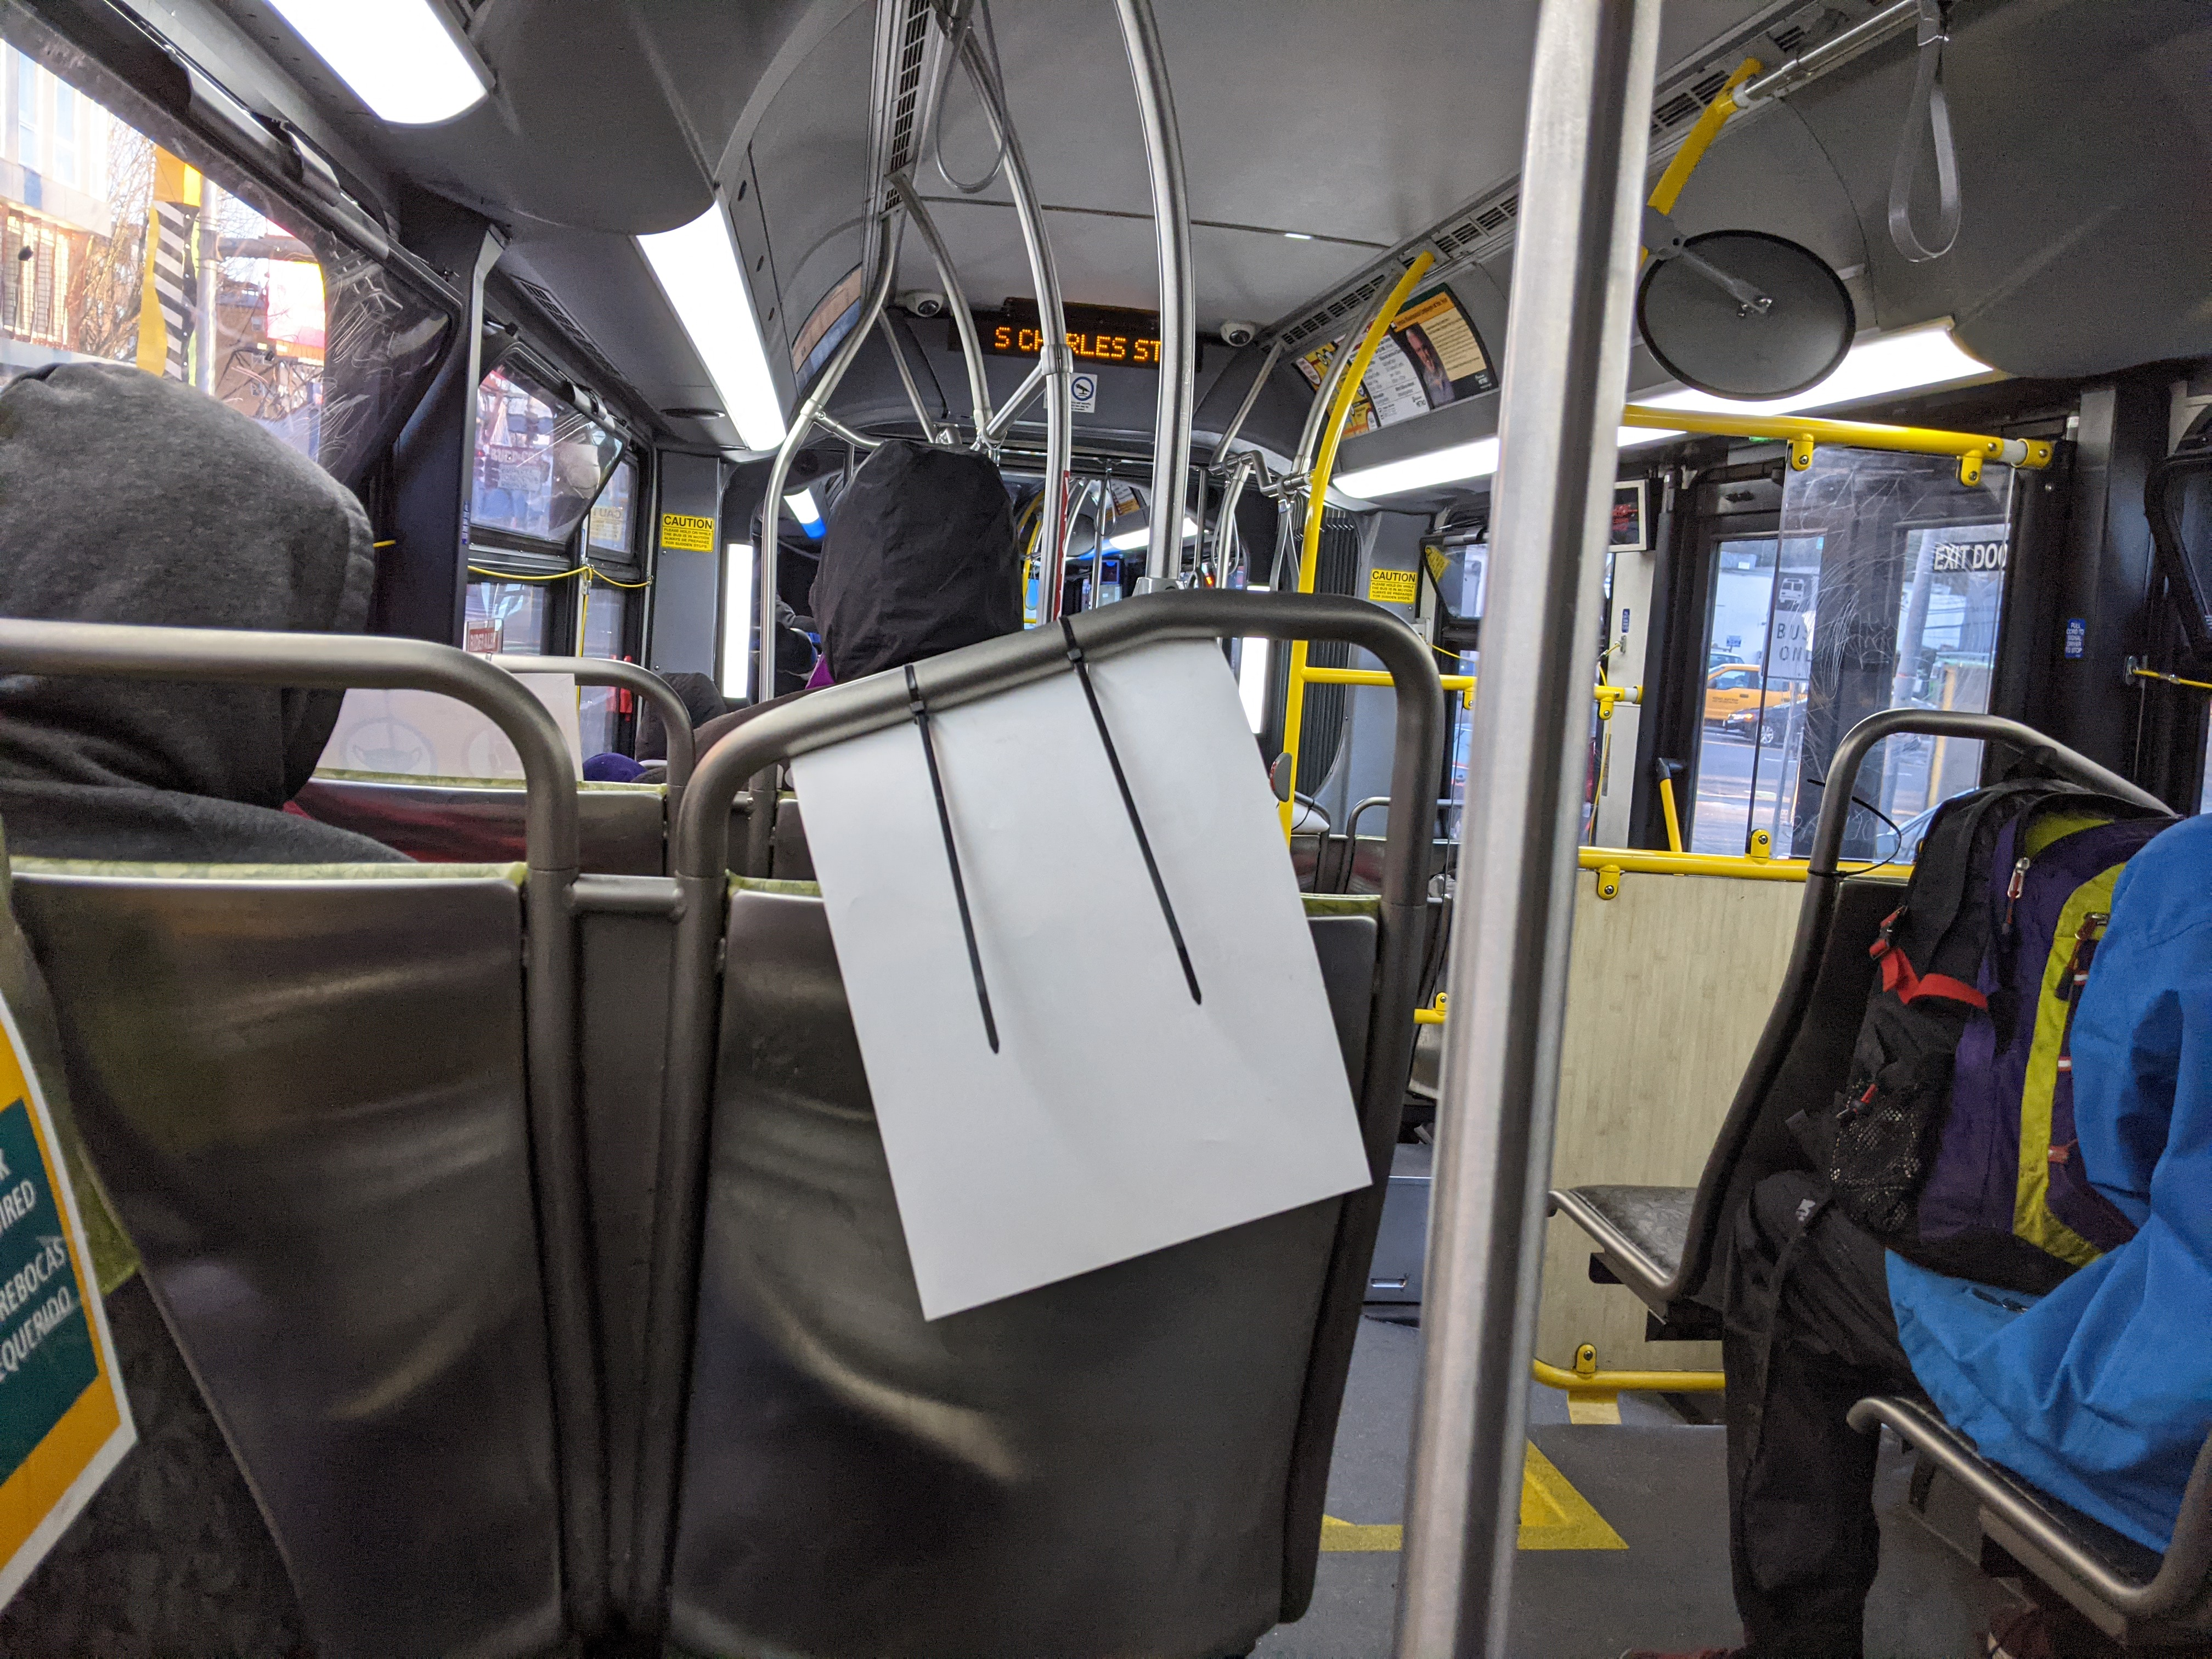 View from a seat on a bus. People sitting in seats in front are wearing hoods.